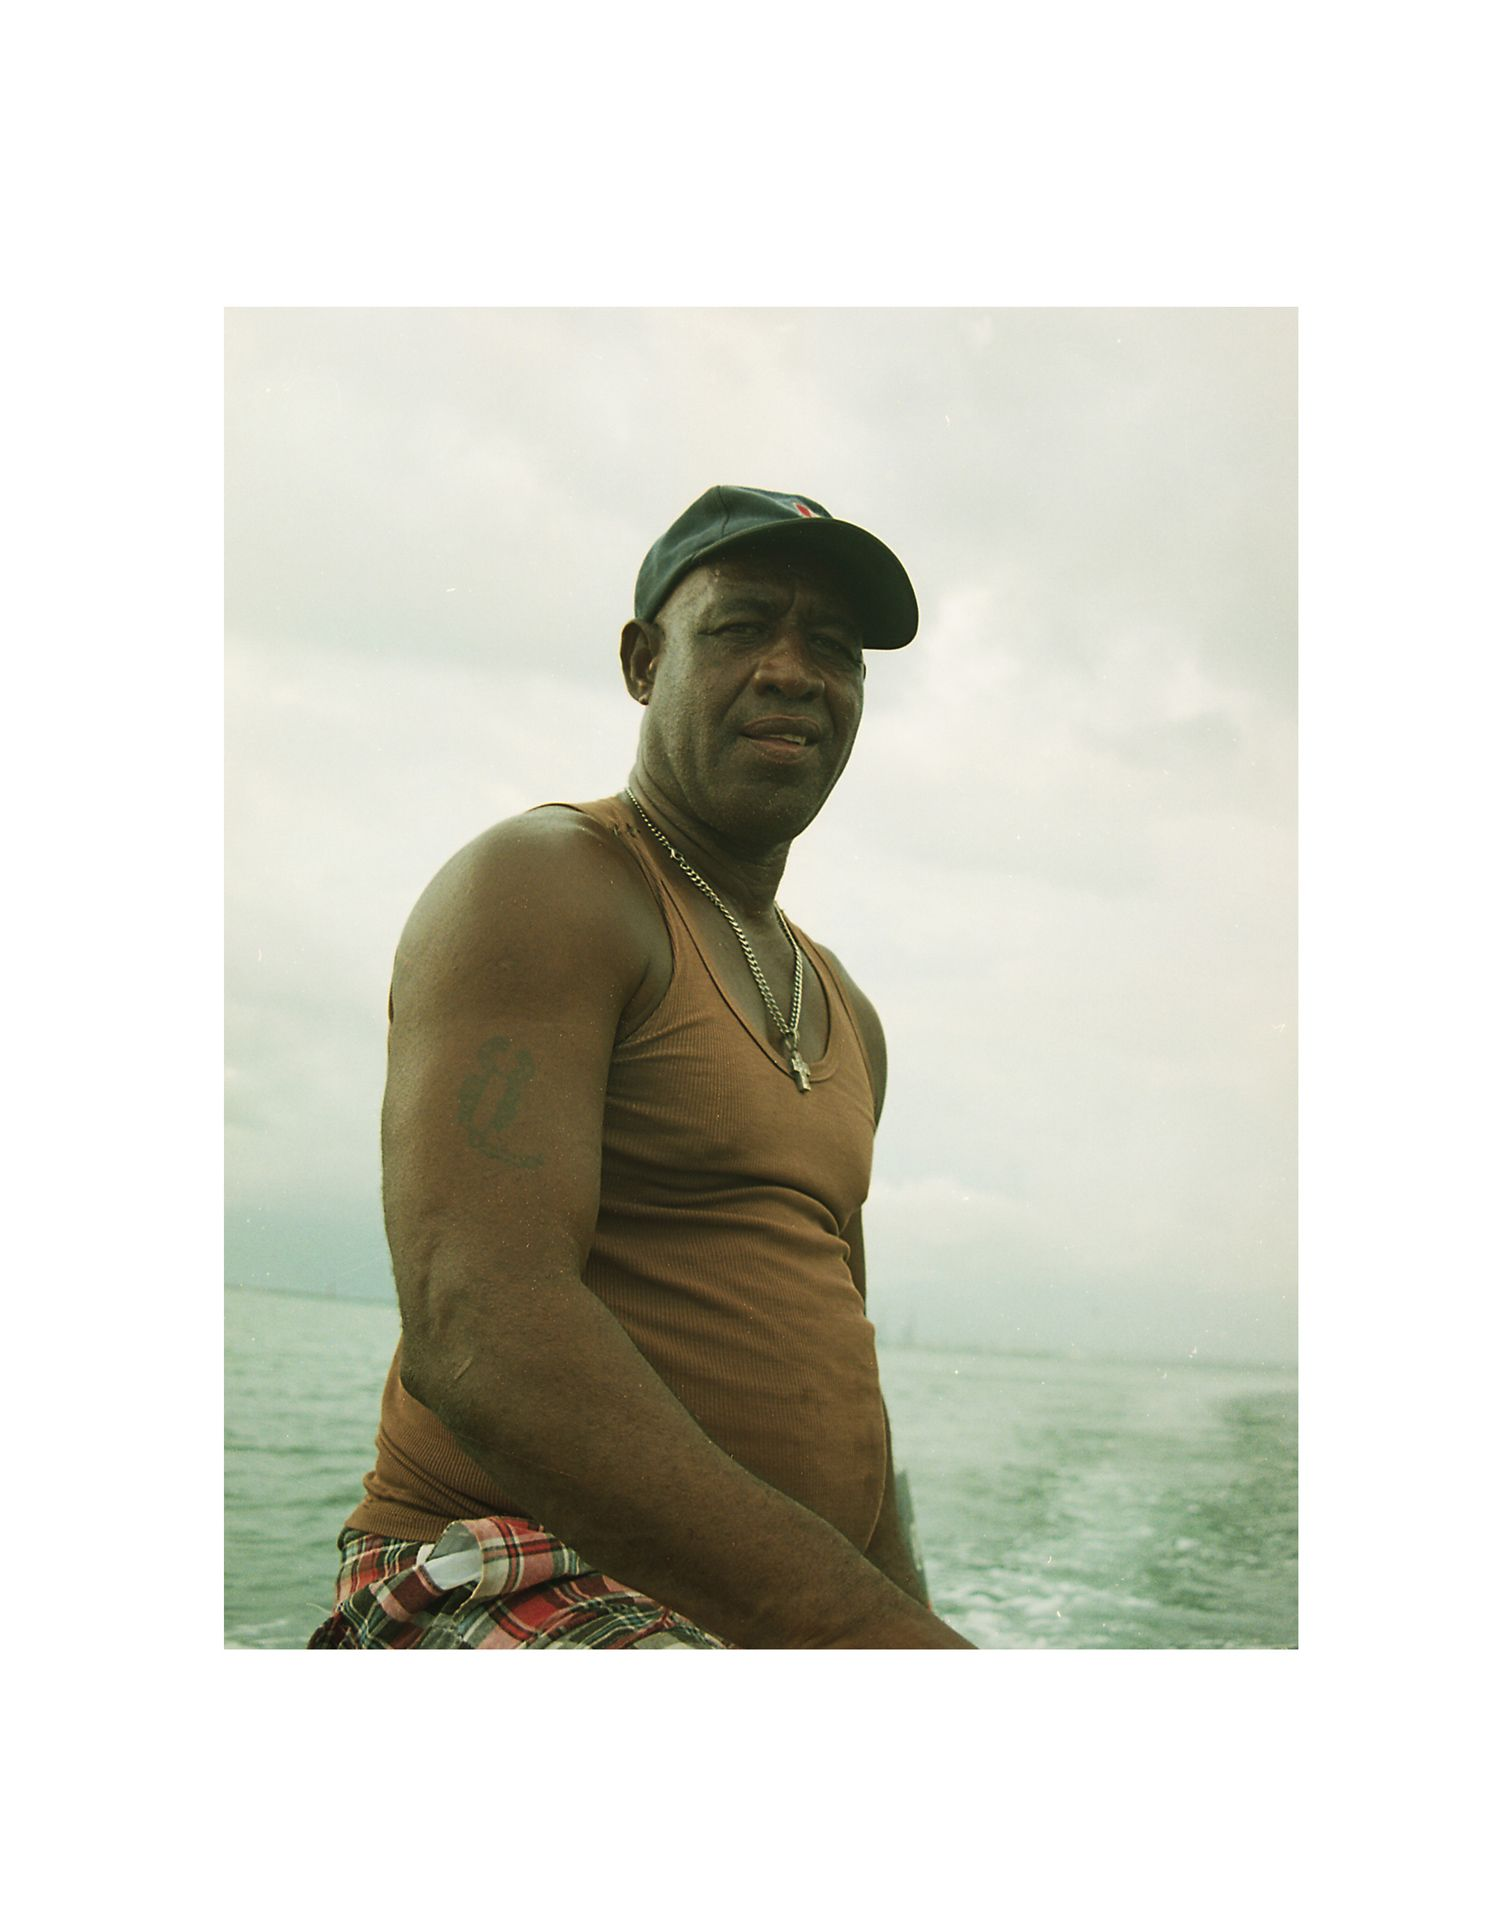 jamaican man boat driver looking at camera by Oumayma B Tanfous in Jamaica